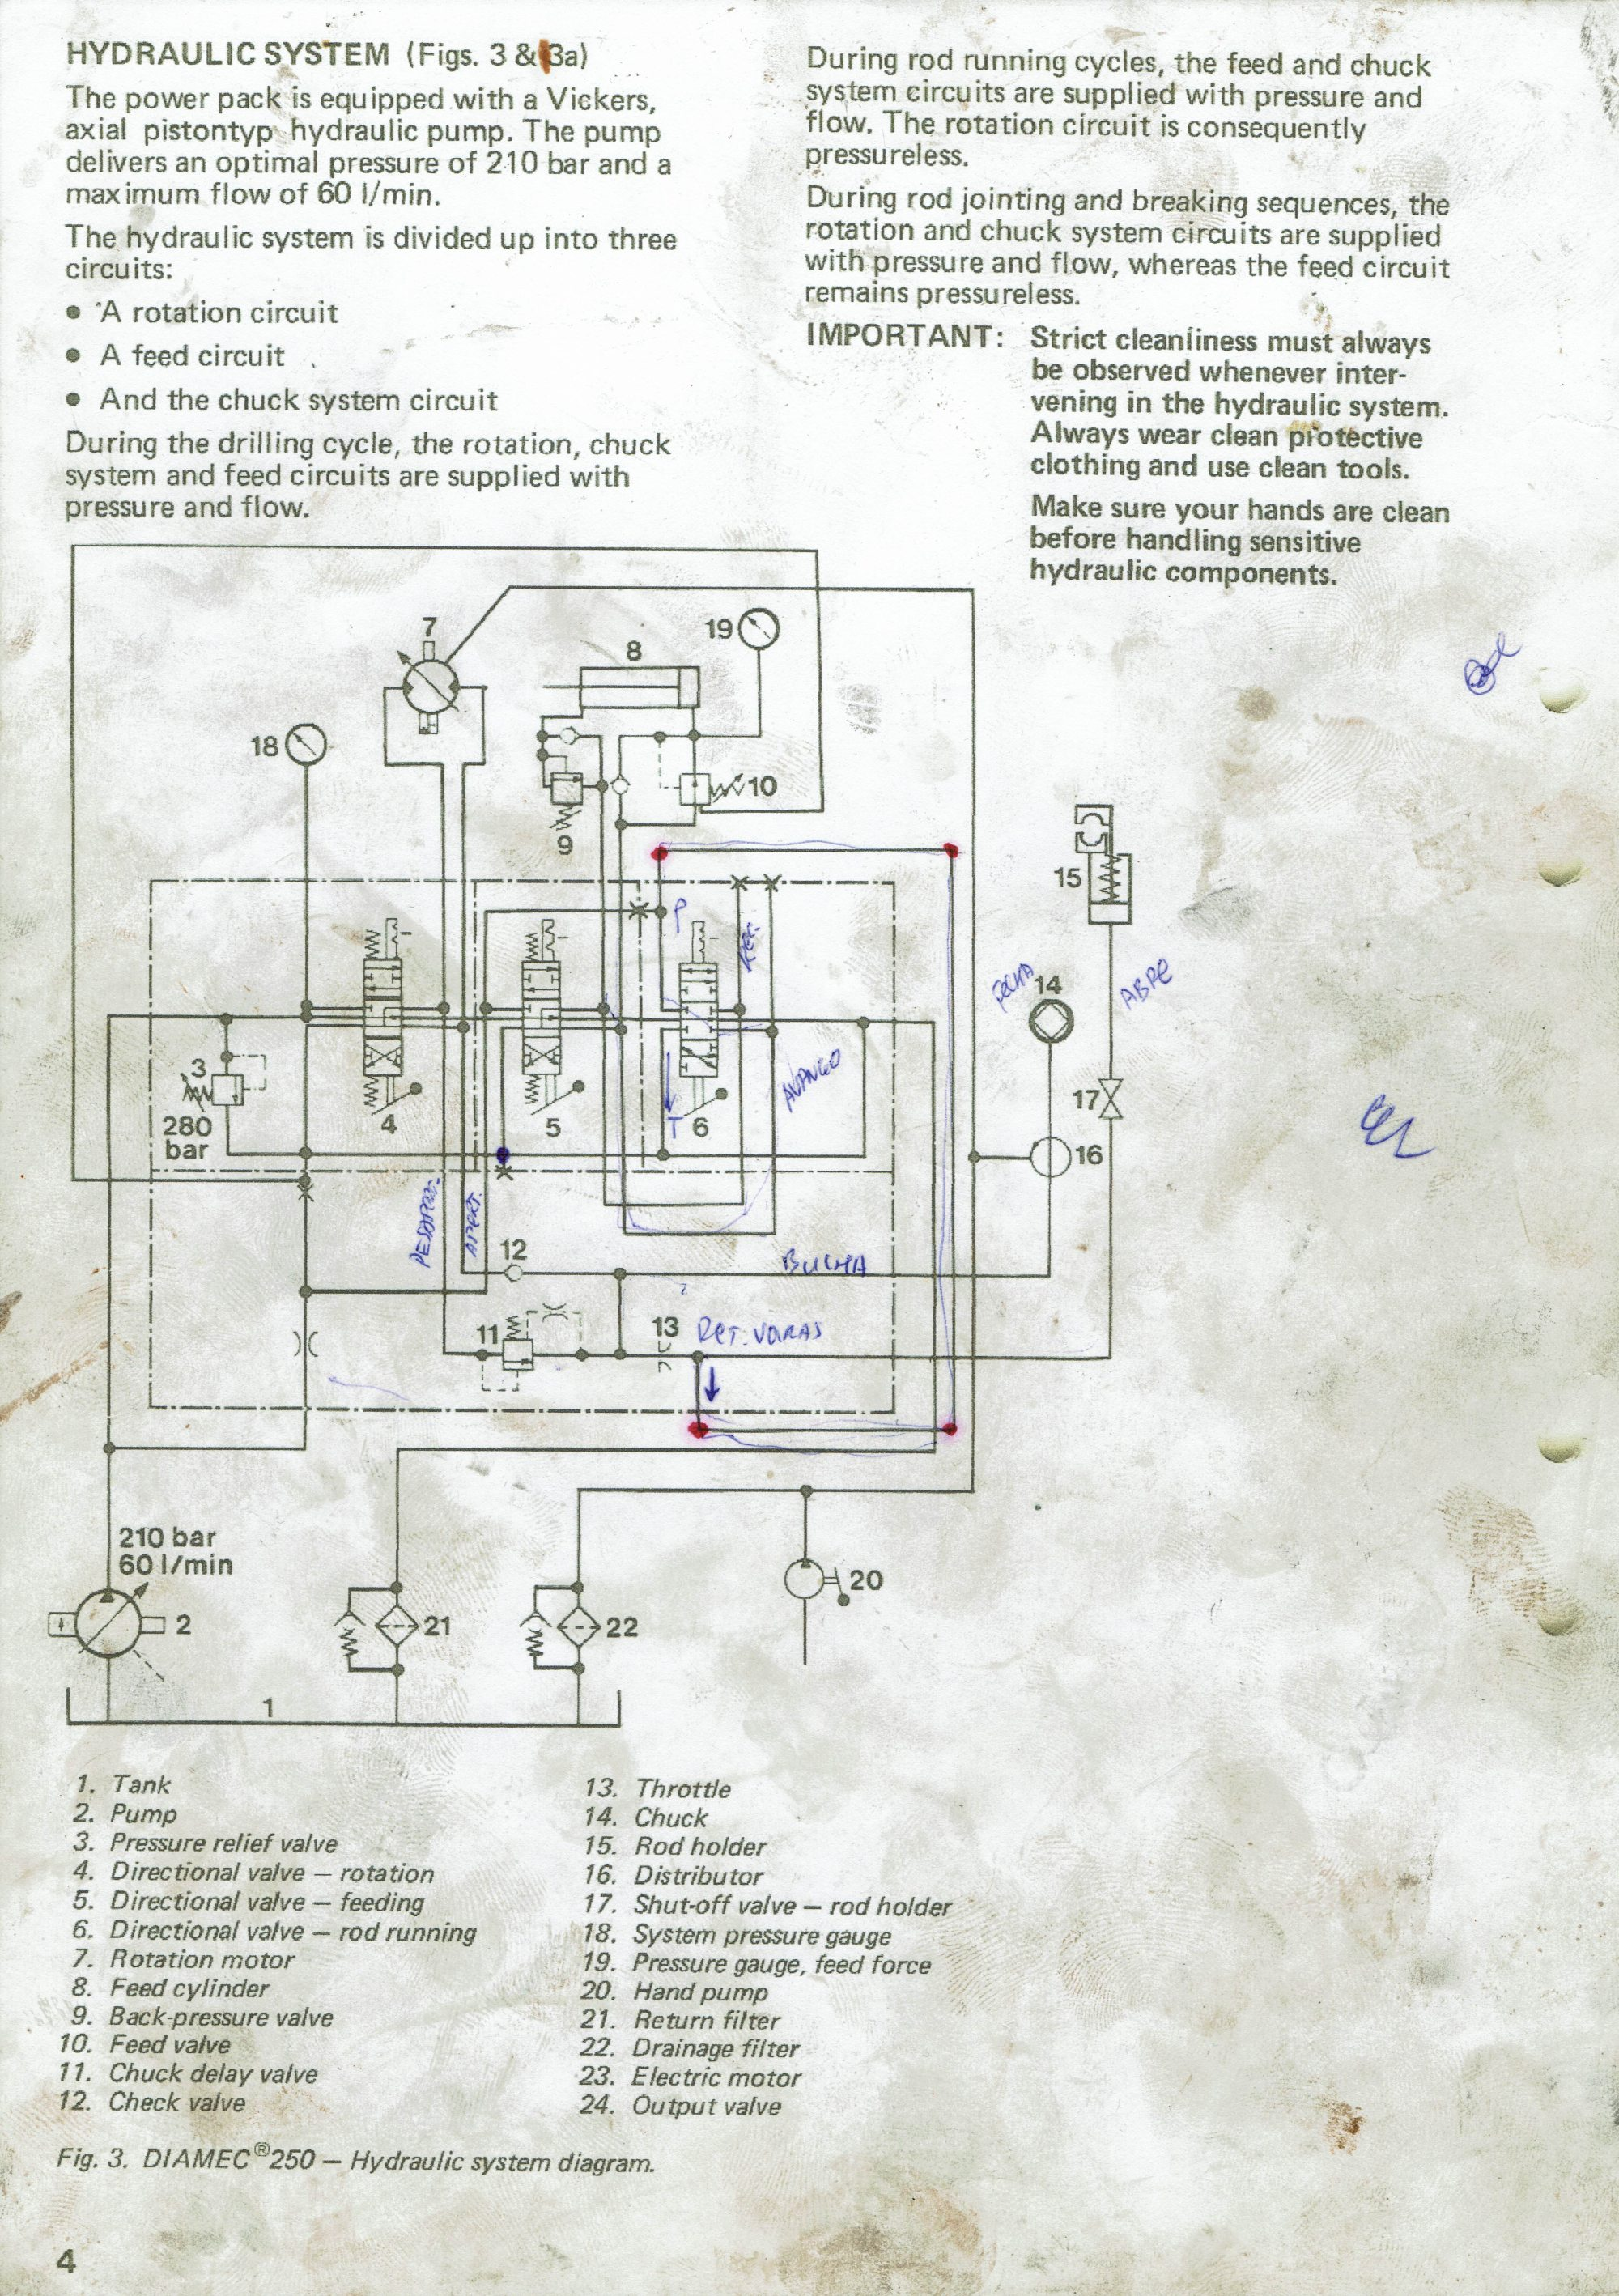 hight resolution of hydraulic control panel for diamec 250 core drilling rig based on danfoss pvg32 valve